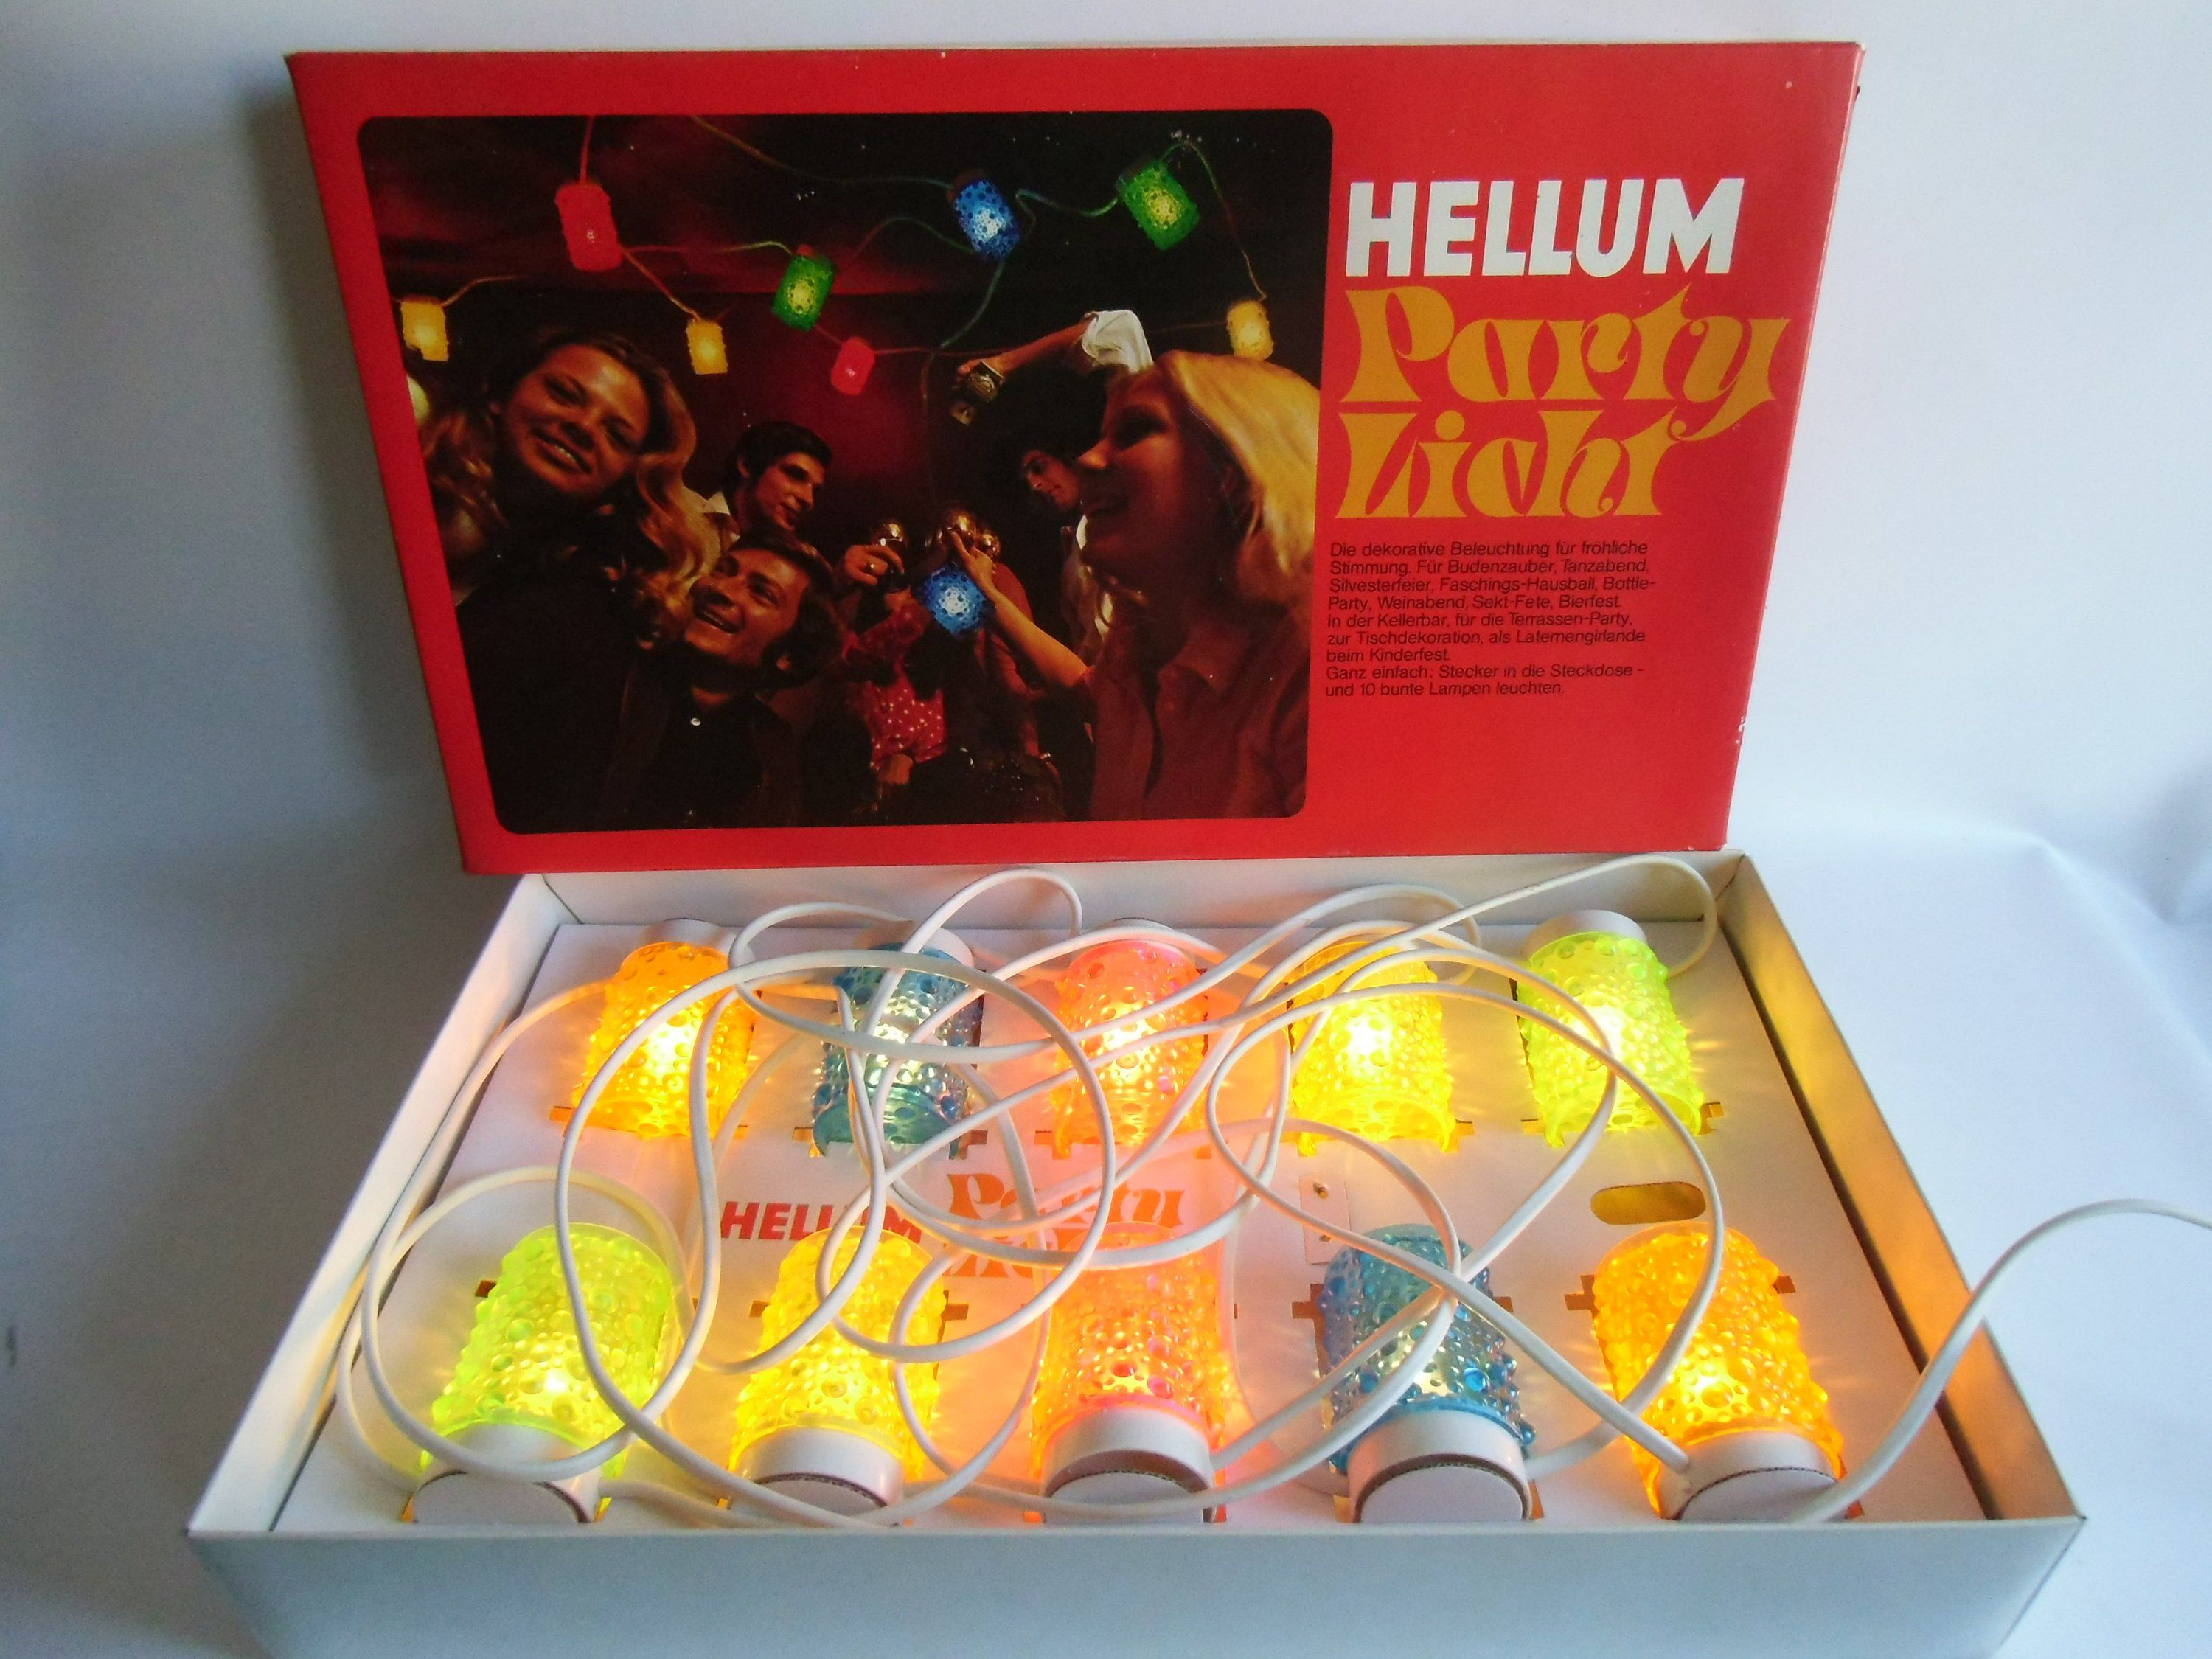 Partylicht Beleuchtung Original Ddr Ovp Hellum Narva Party Girlande Disco Space Age Spacy Silvester New Year S Partylicht Party Girlande Party